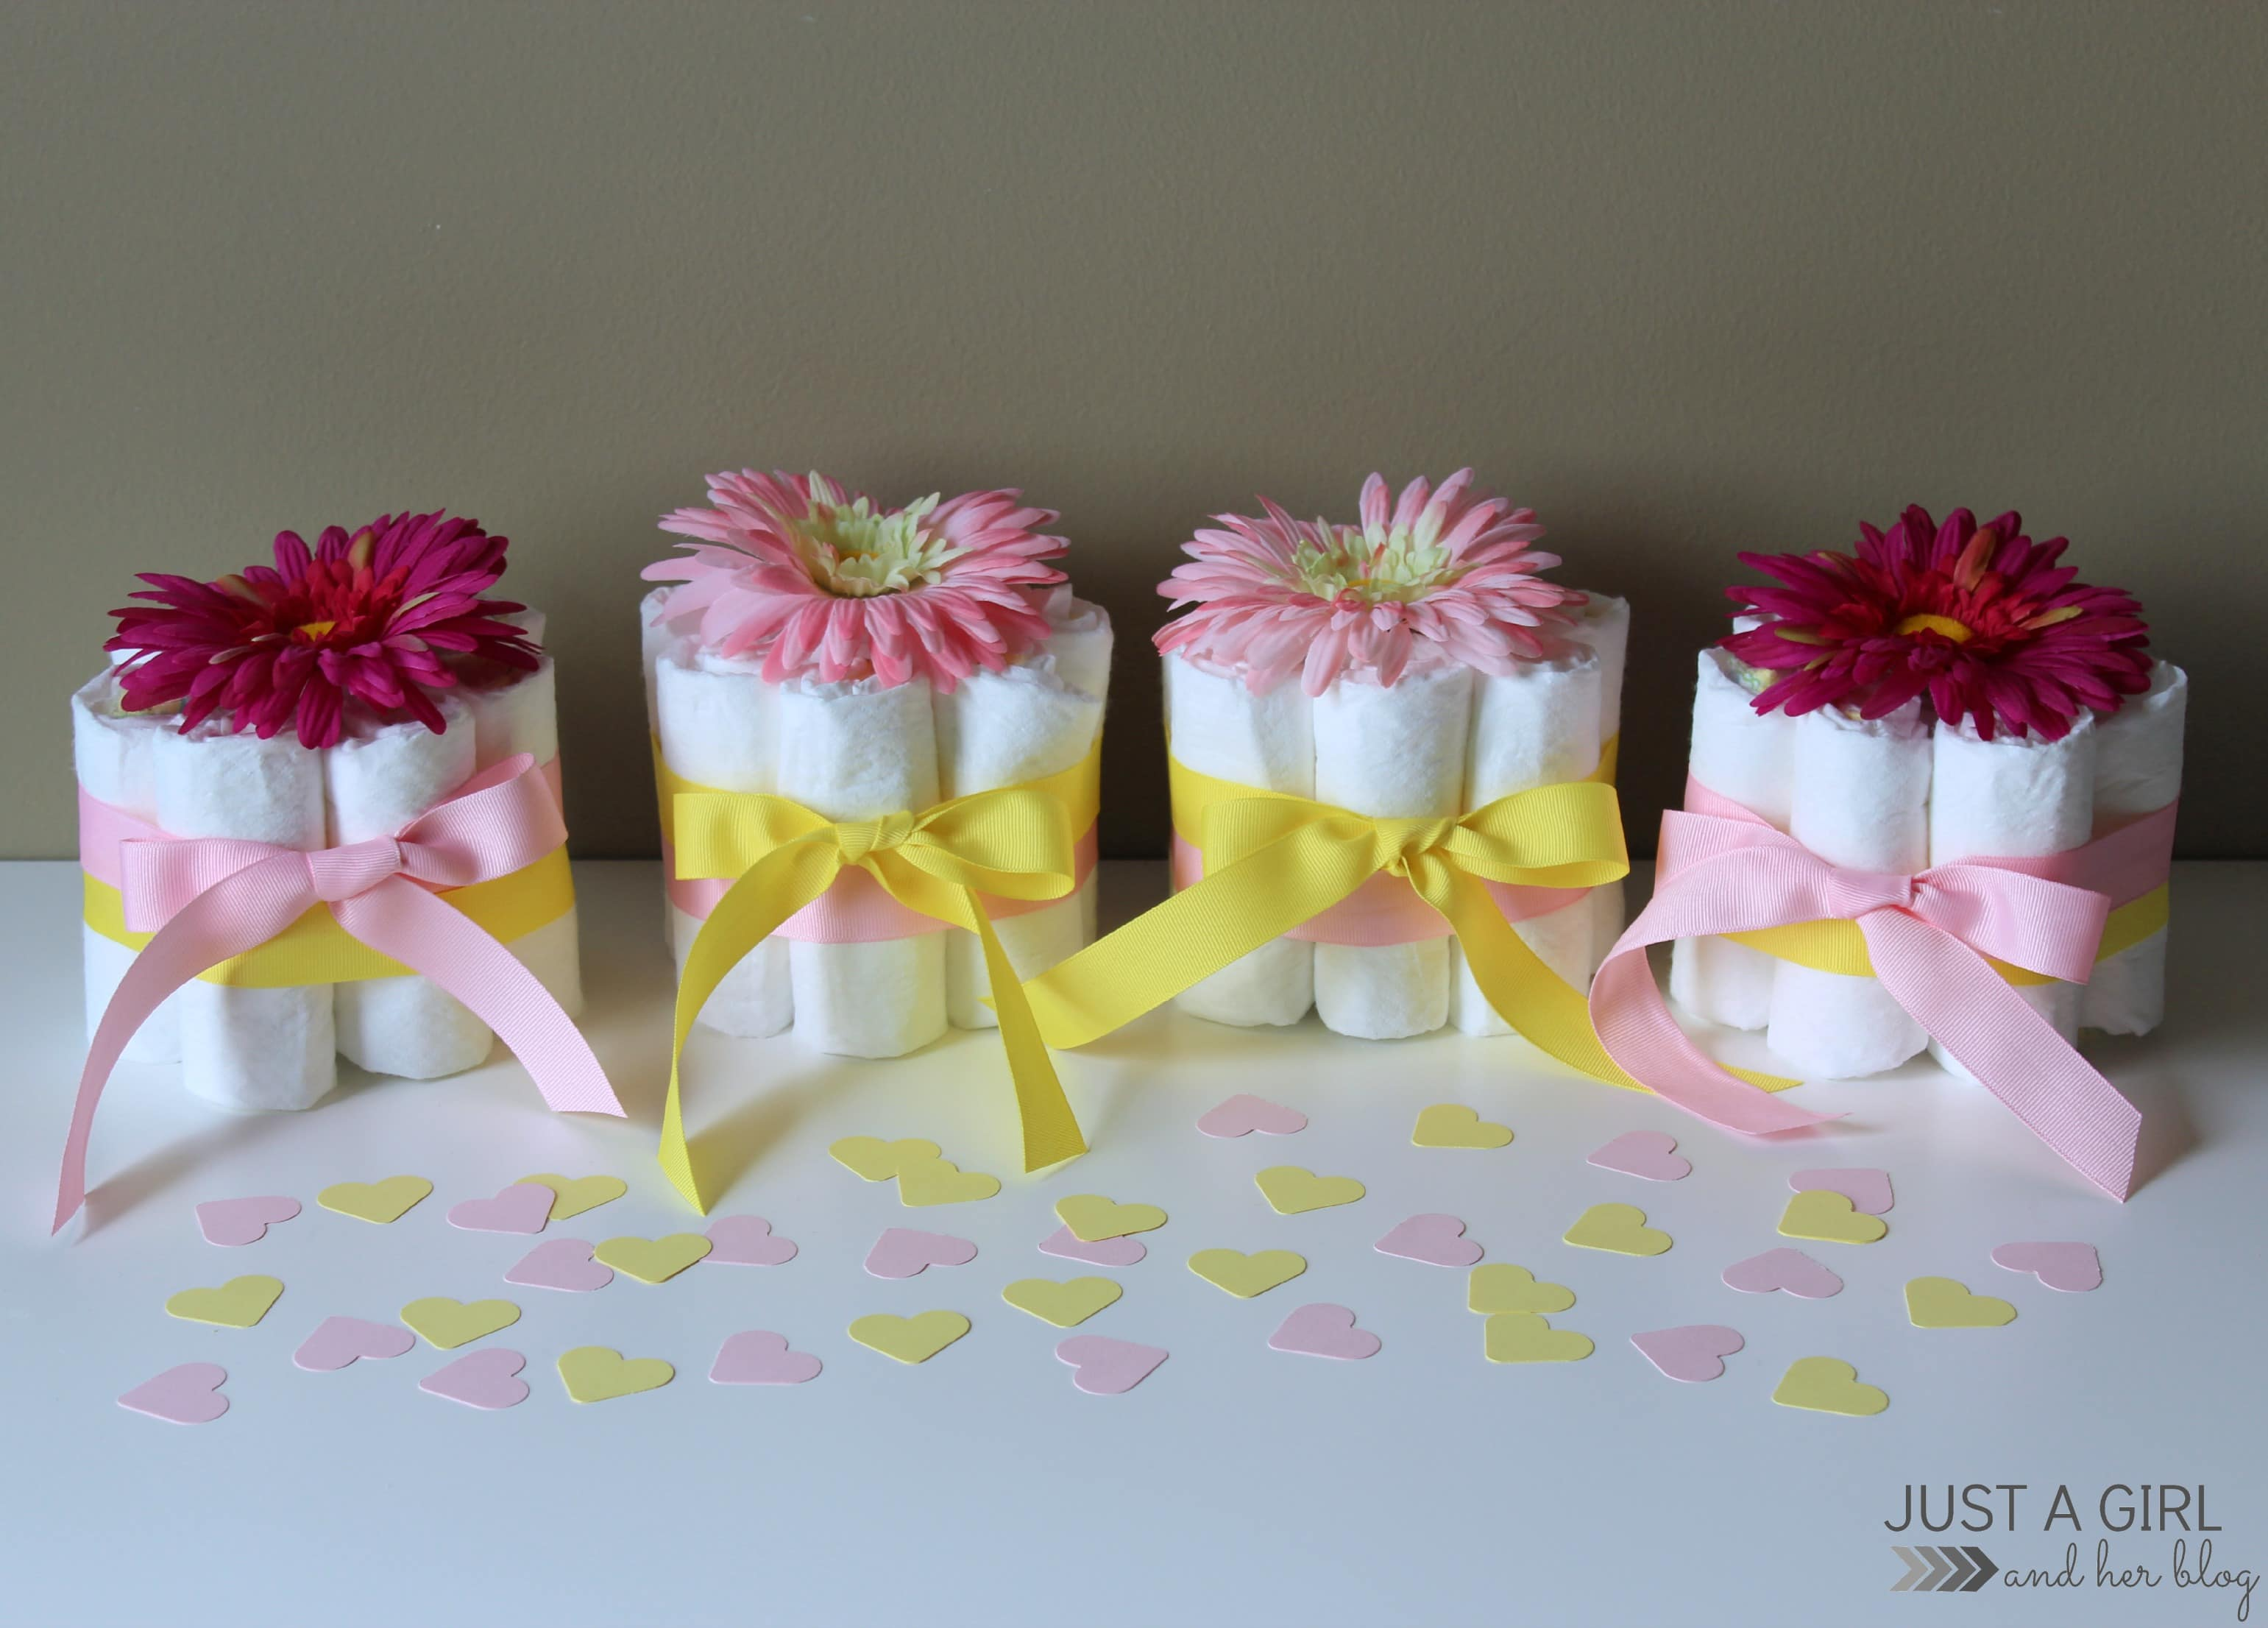 Easy Centerpiece For Baby Shower : Sweet and simple baby shower centerpieces just a girl